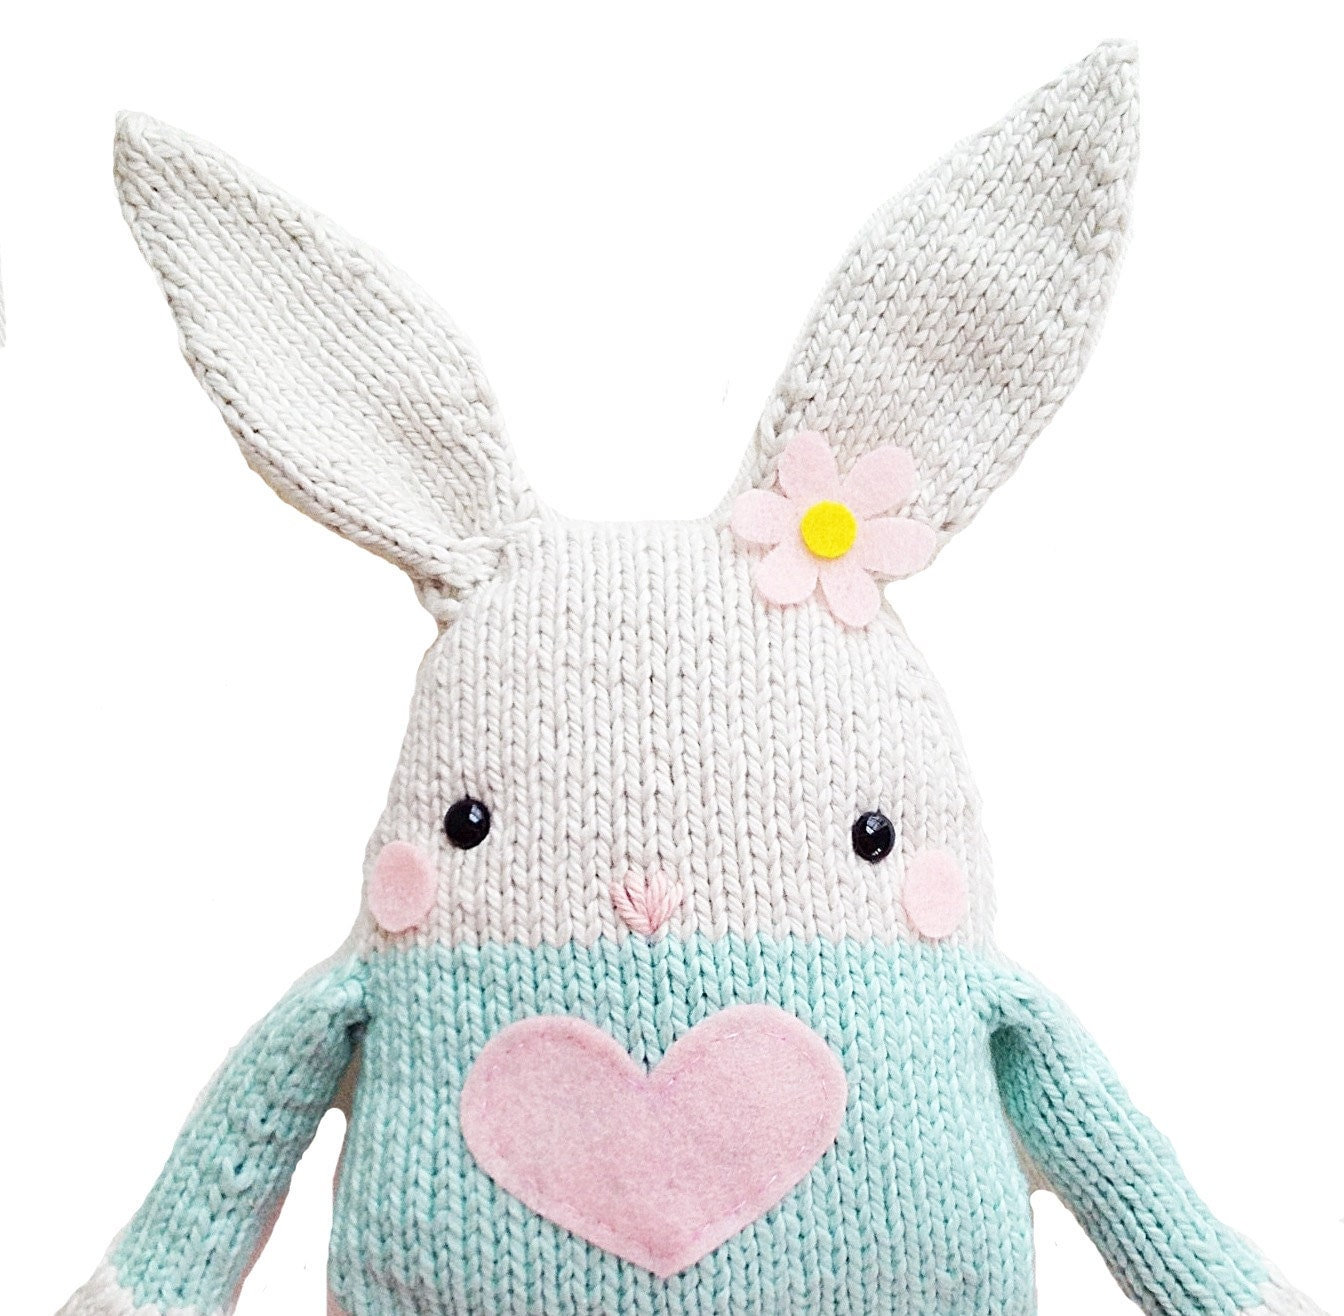 Knitting Patterns For Toy Rabbits : Bunny Knitting Pattern Toy Bunny Softie Pattern by GandGPatterns